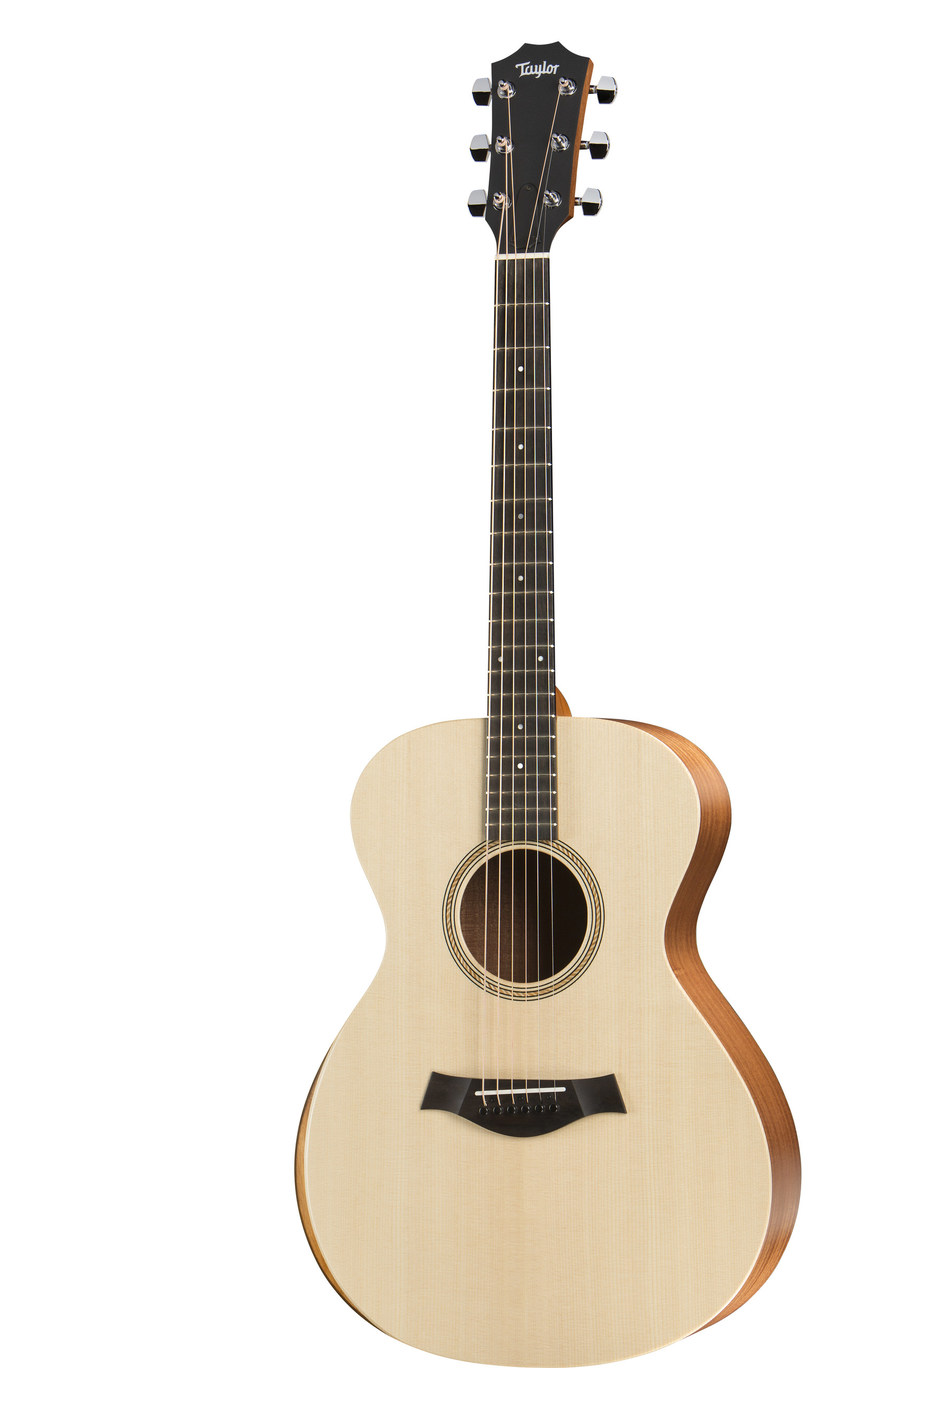 The New Academy Series From Taylor Guitars Offers Beginner Players World-Class Playability